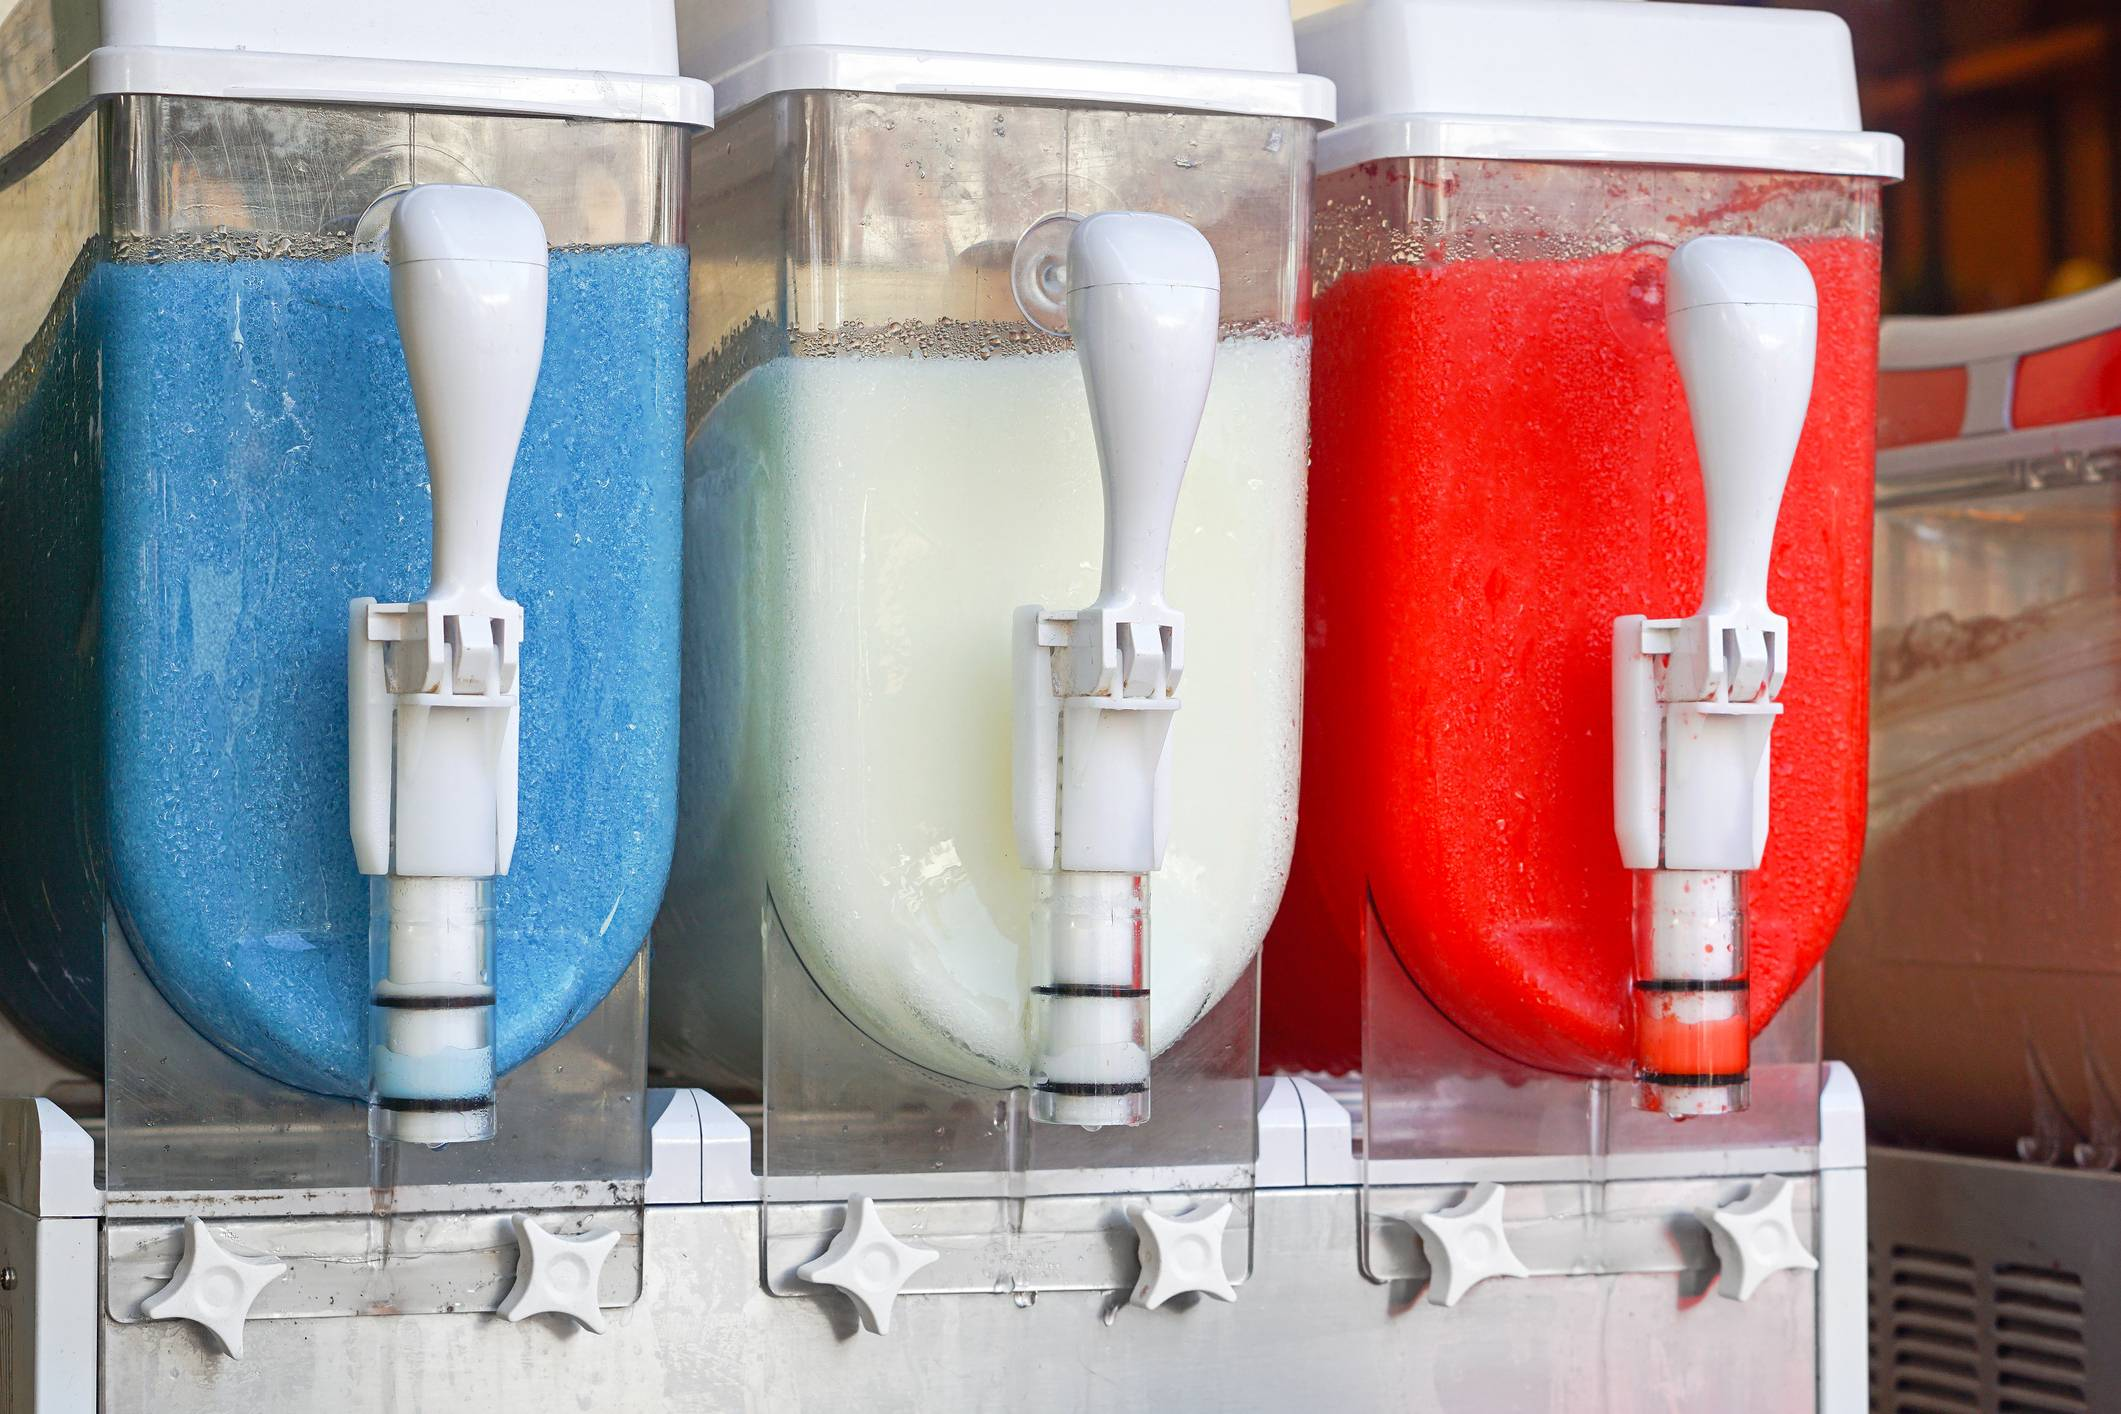 Frozen drinks dispenser